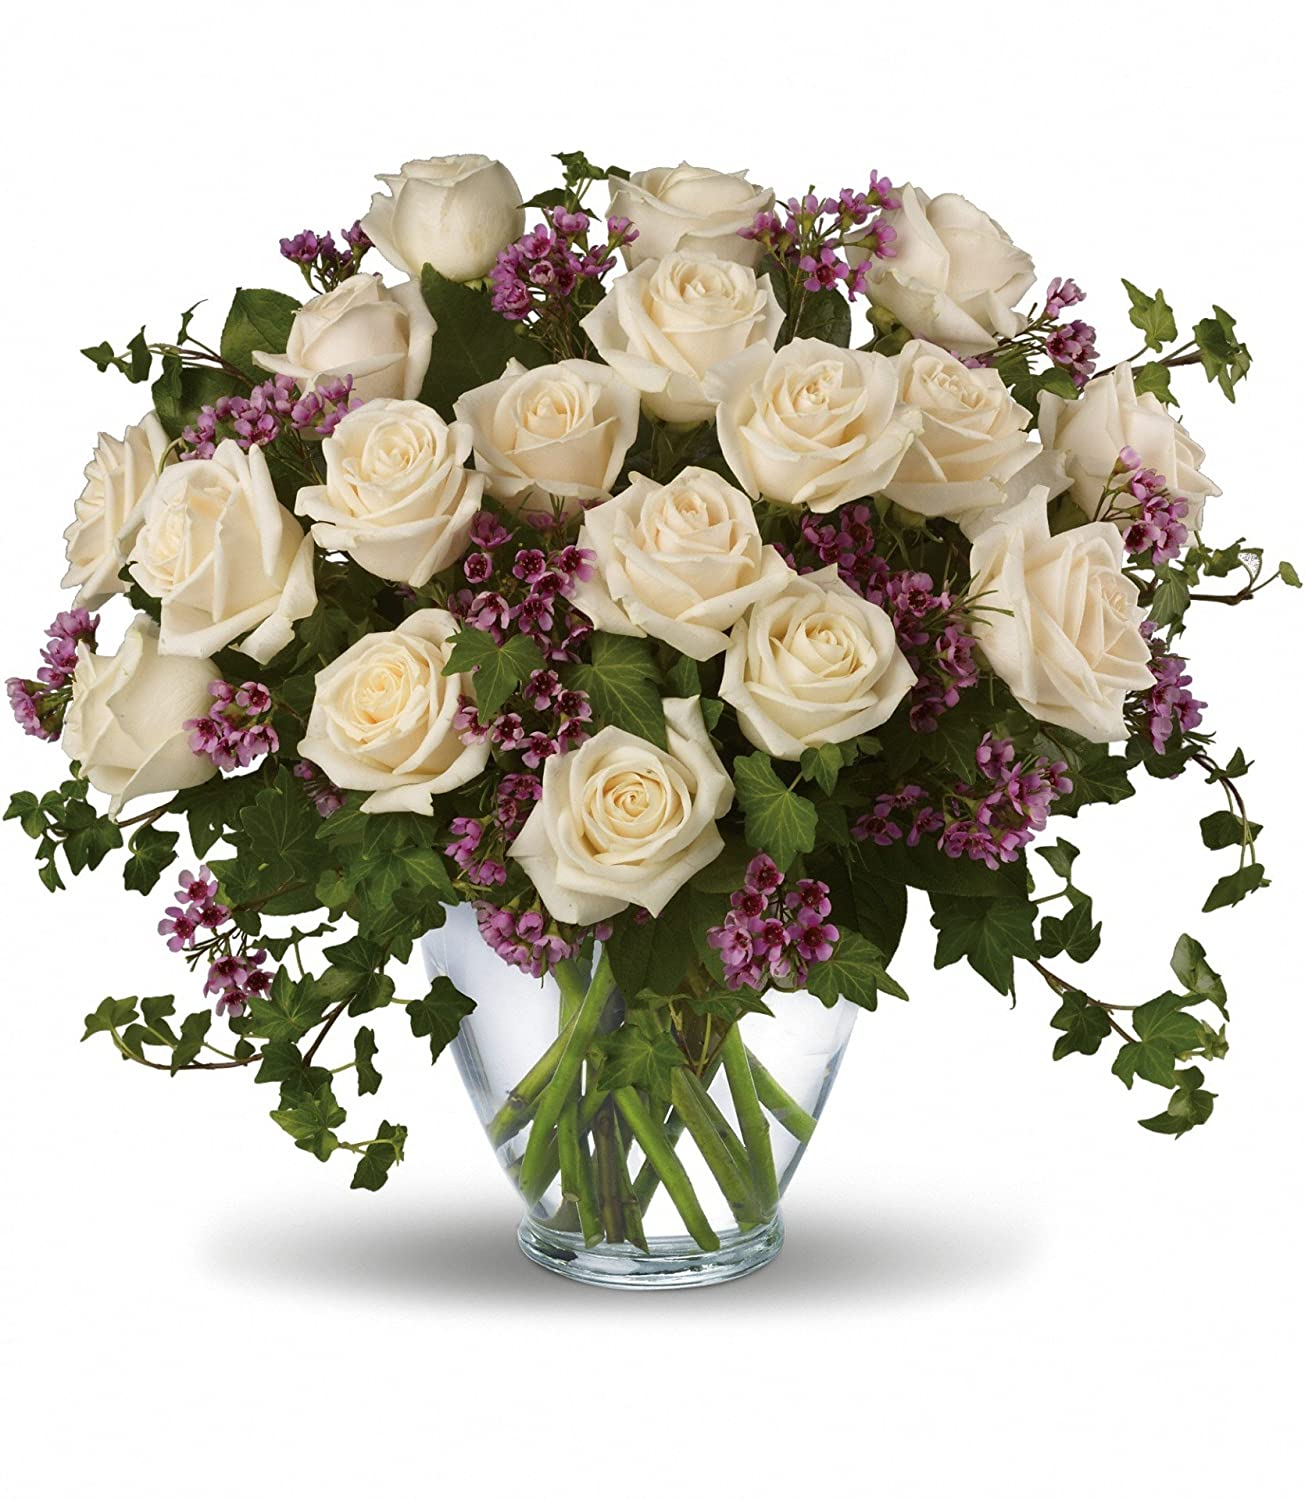 Victorian Creme Deluxe by Plaza Flowers -Mother's Day Flowers - Fresh and Hand Delivered